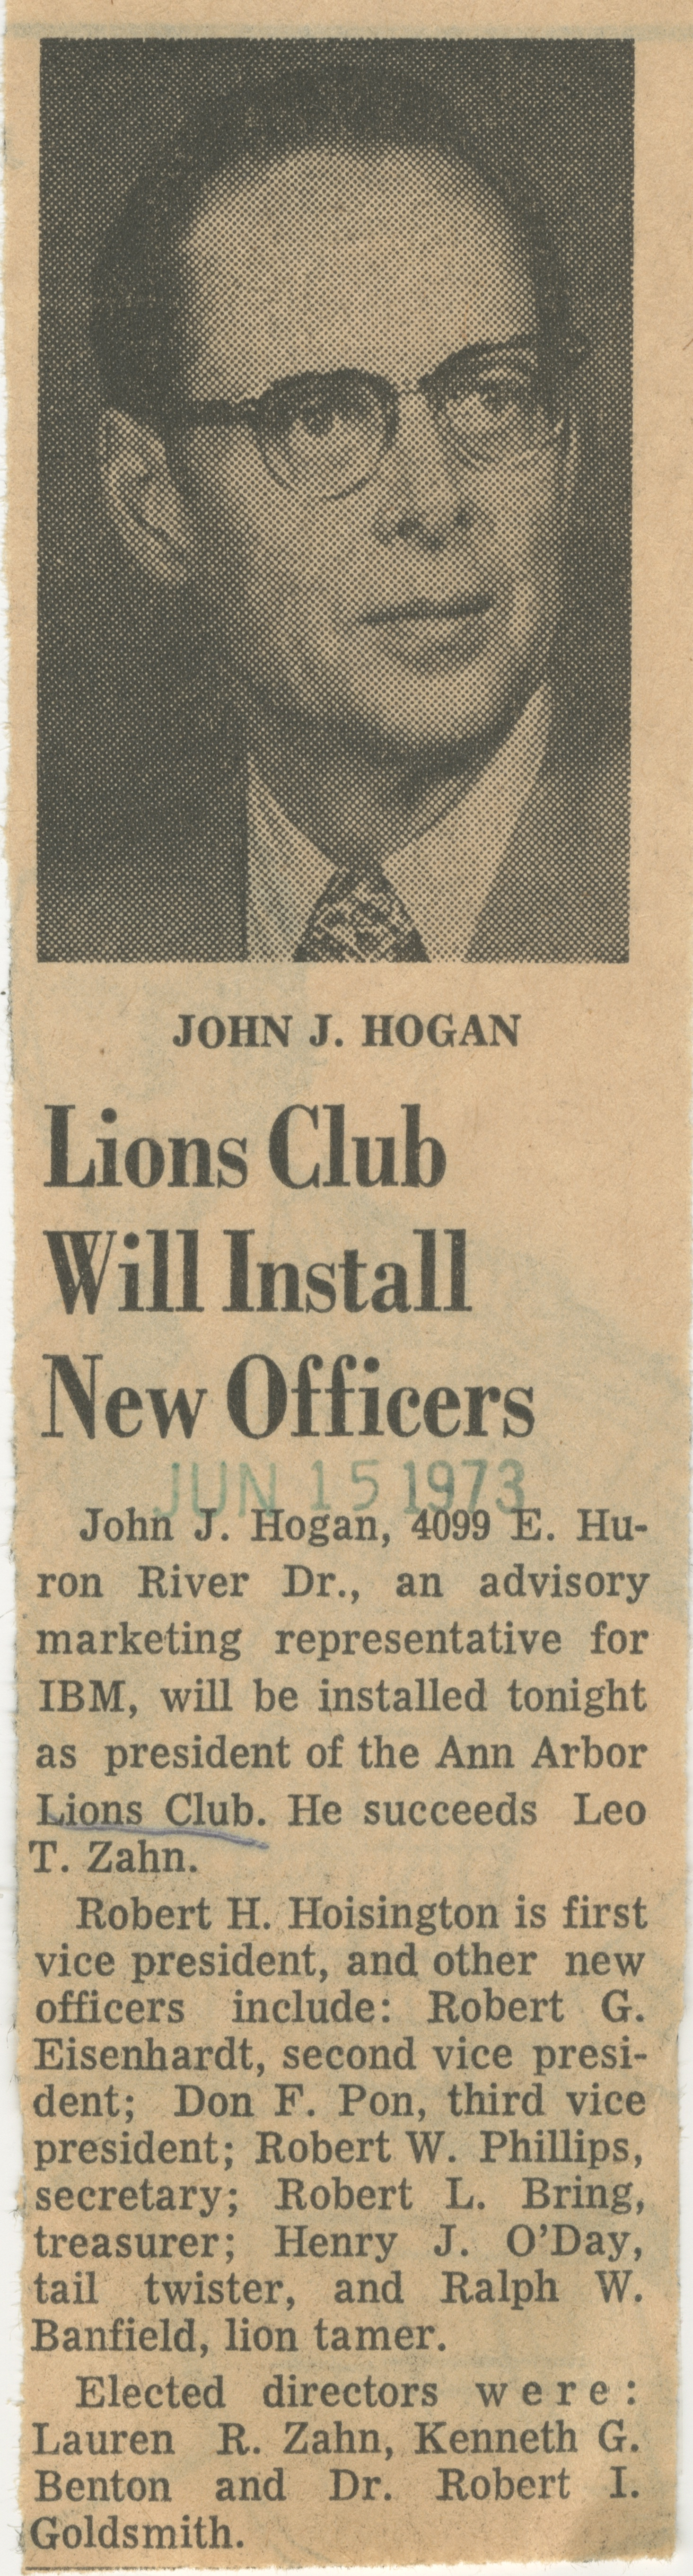 Lions Club Will Install New Officers image